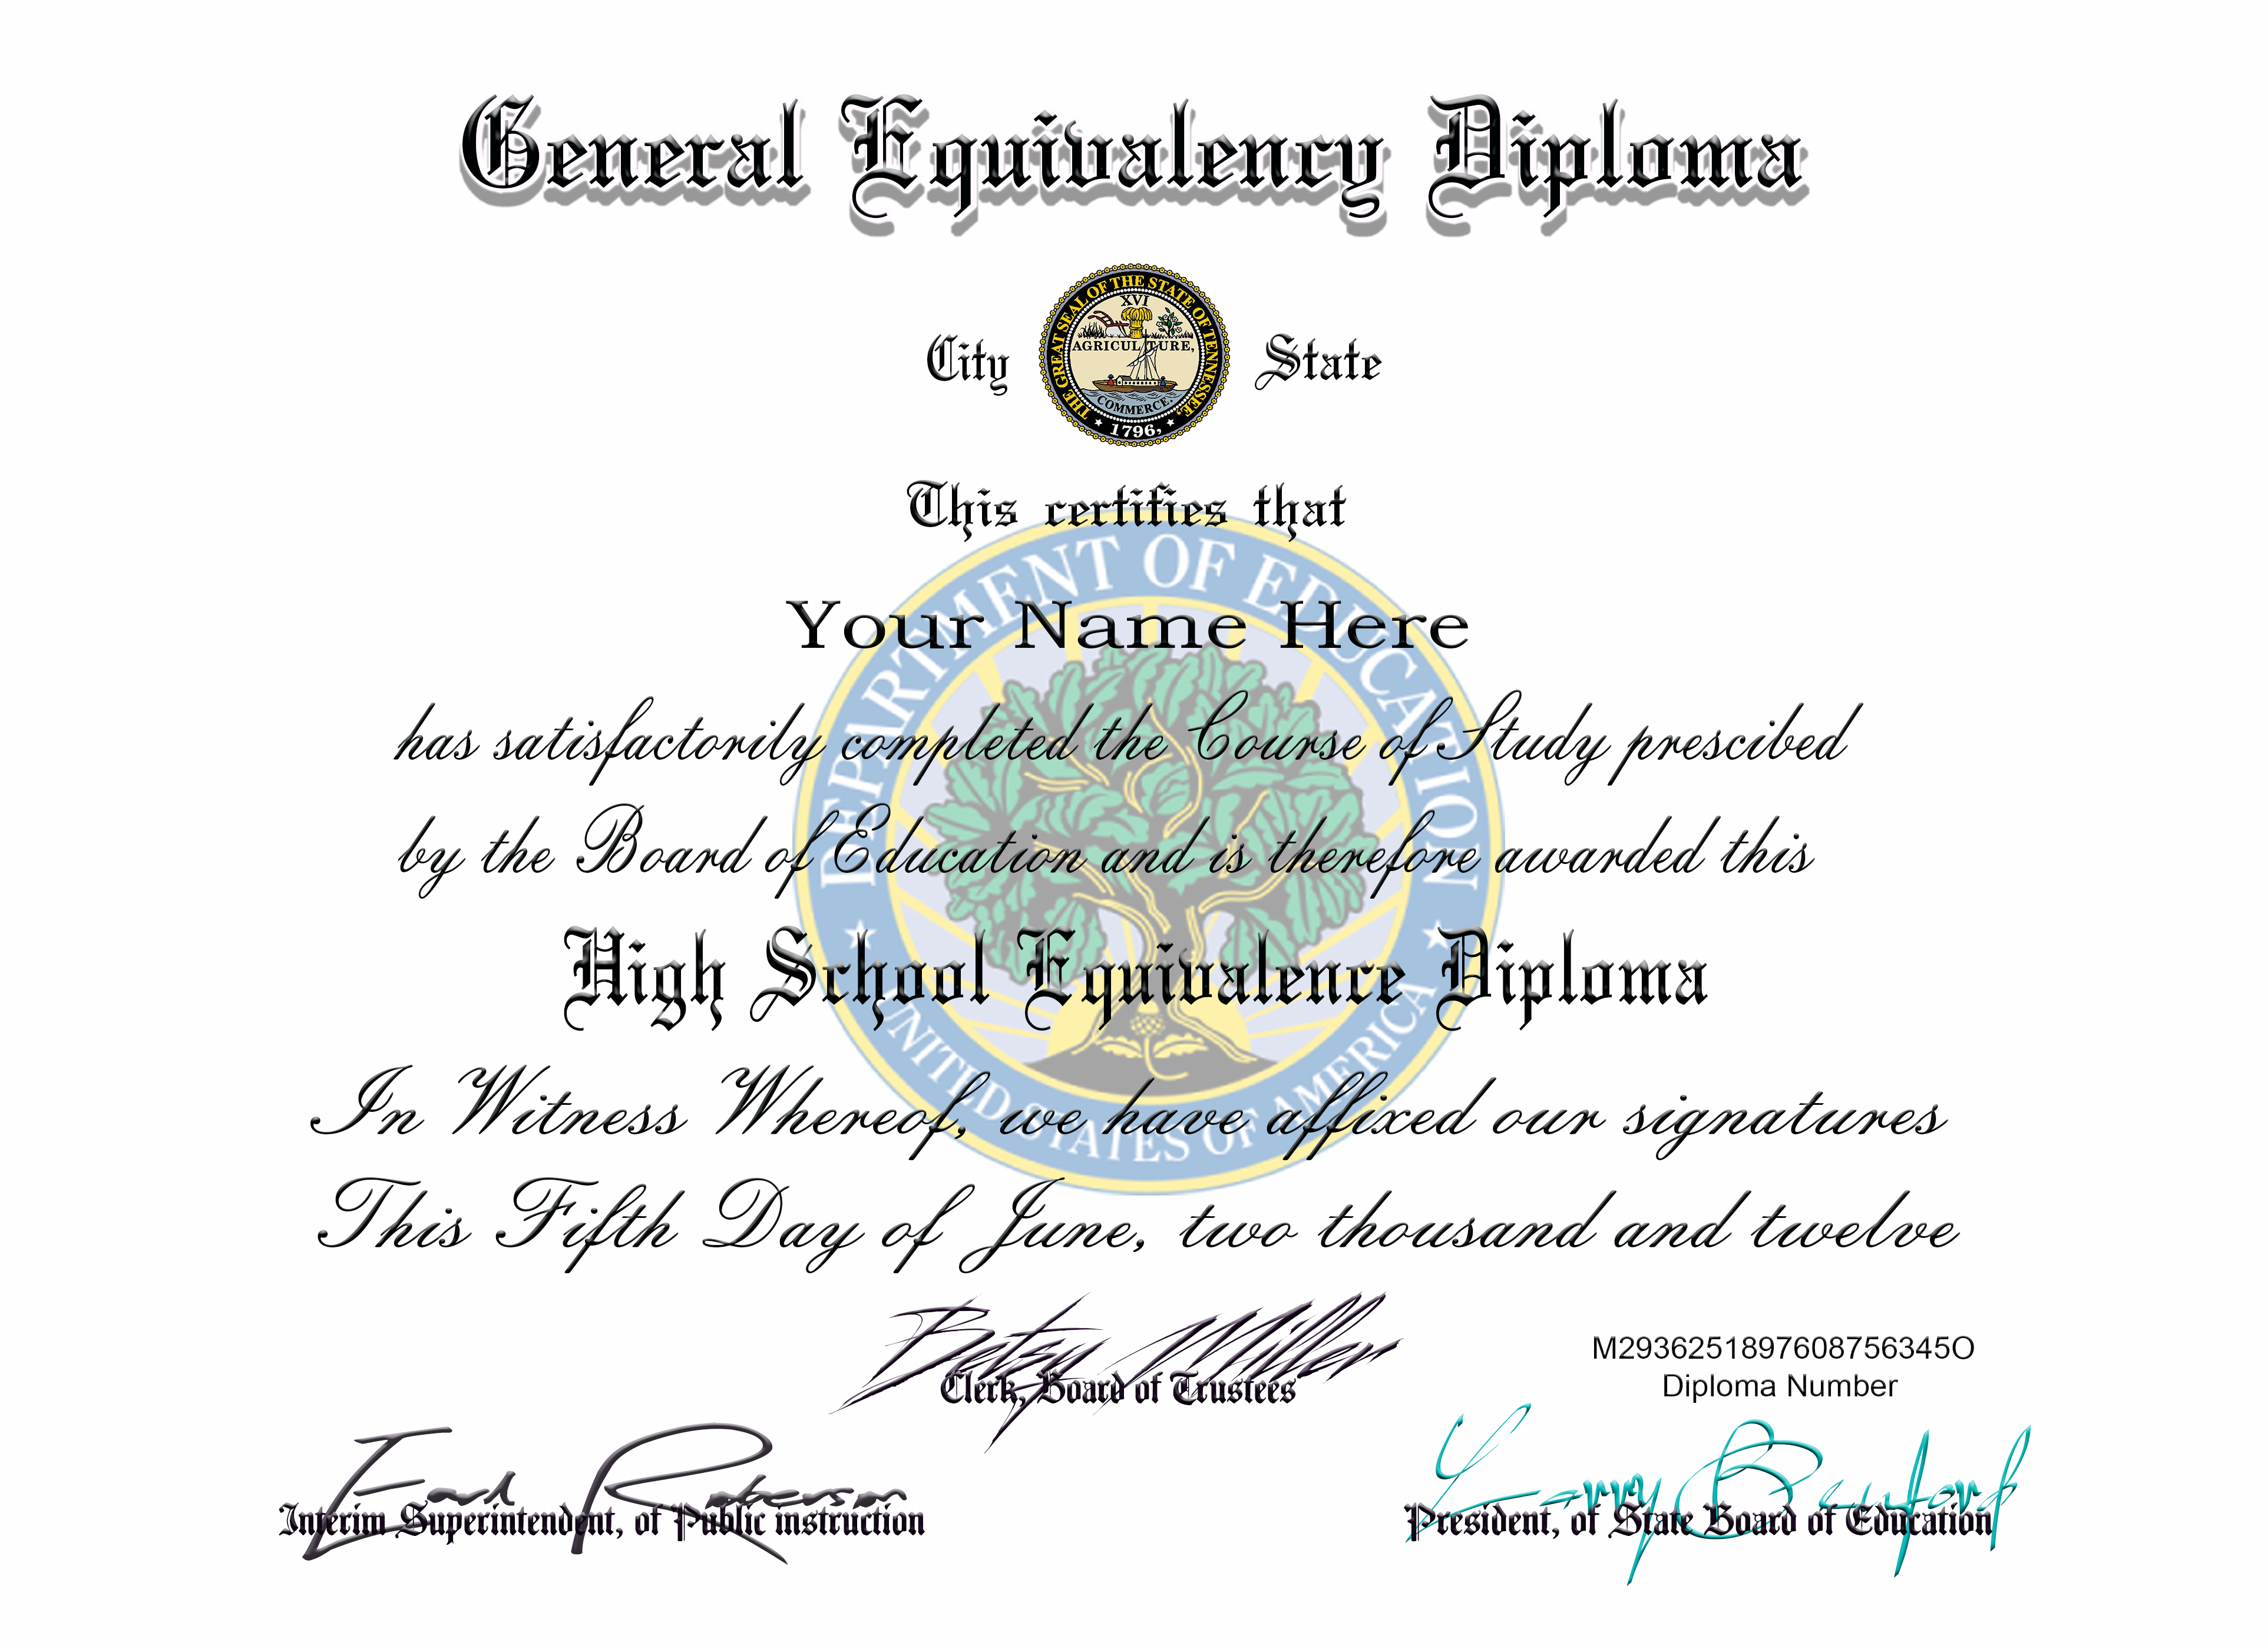 Ged Diploma Professional Layouts Created From Real Certificates